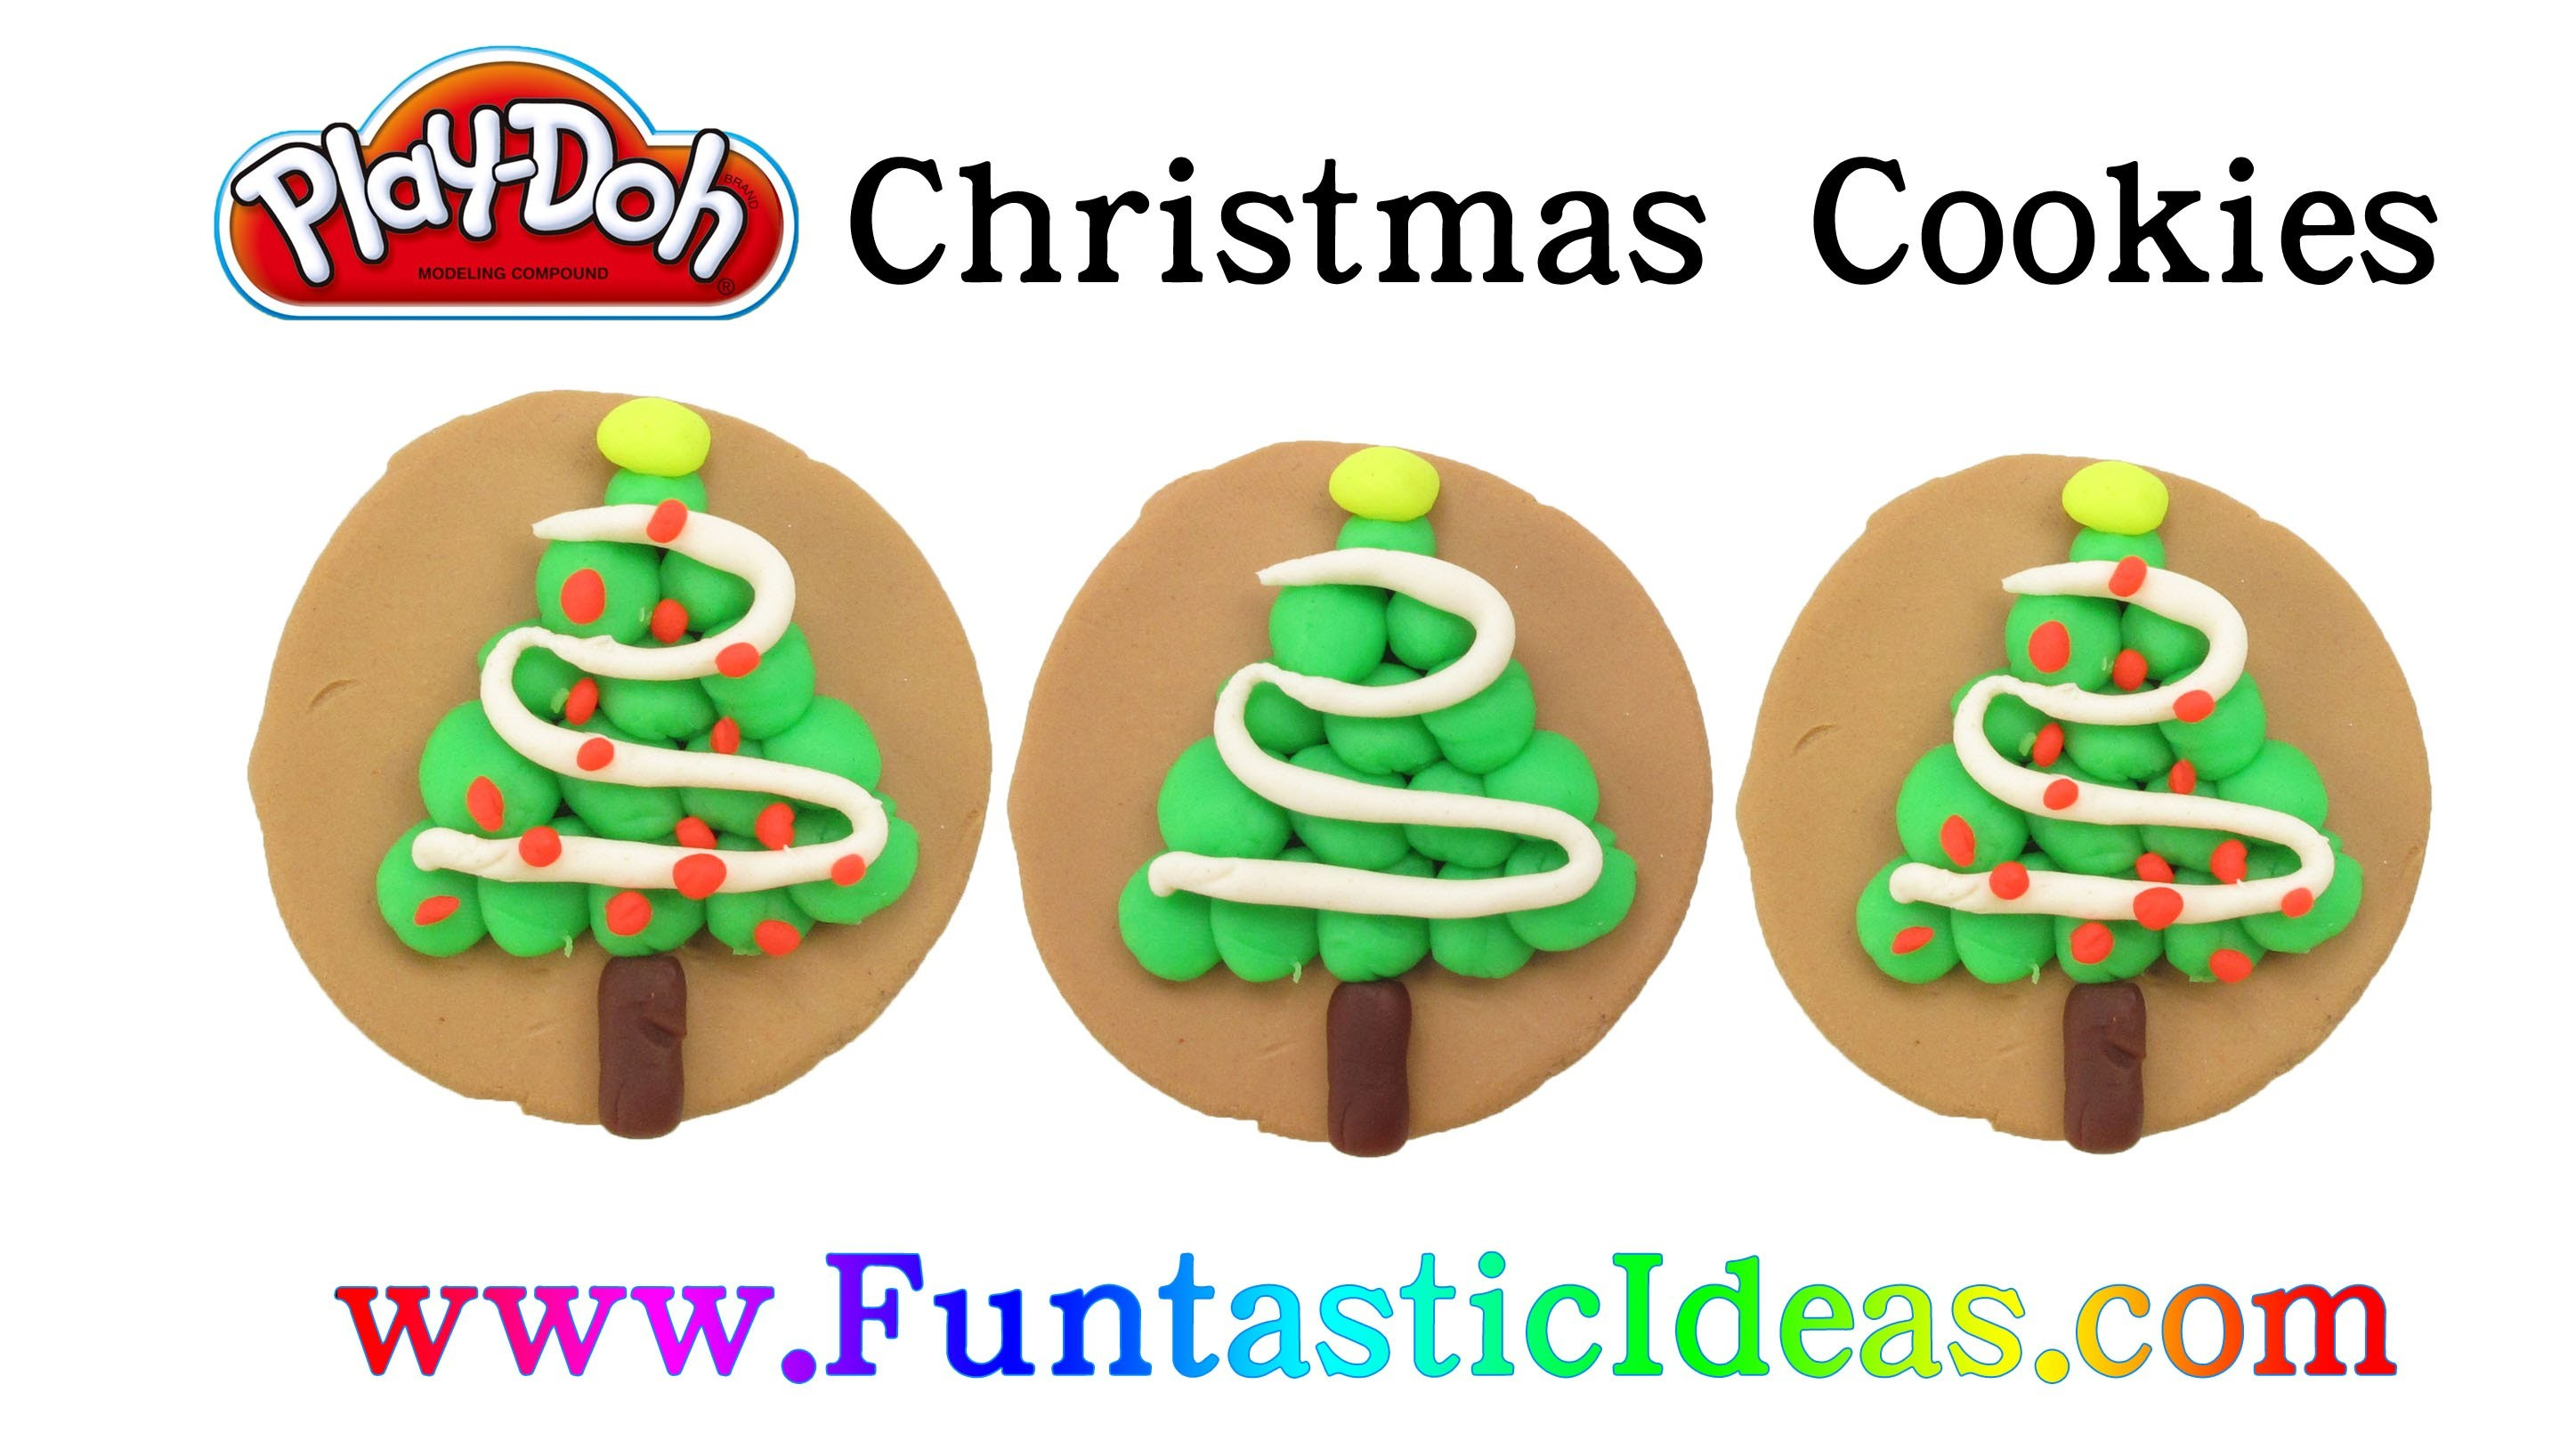 Play Doh Christmas Cookies - How to with playdough